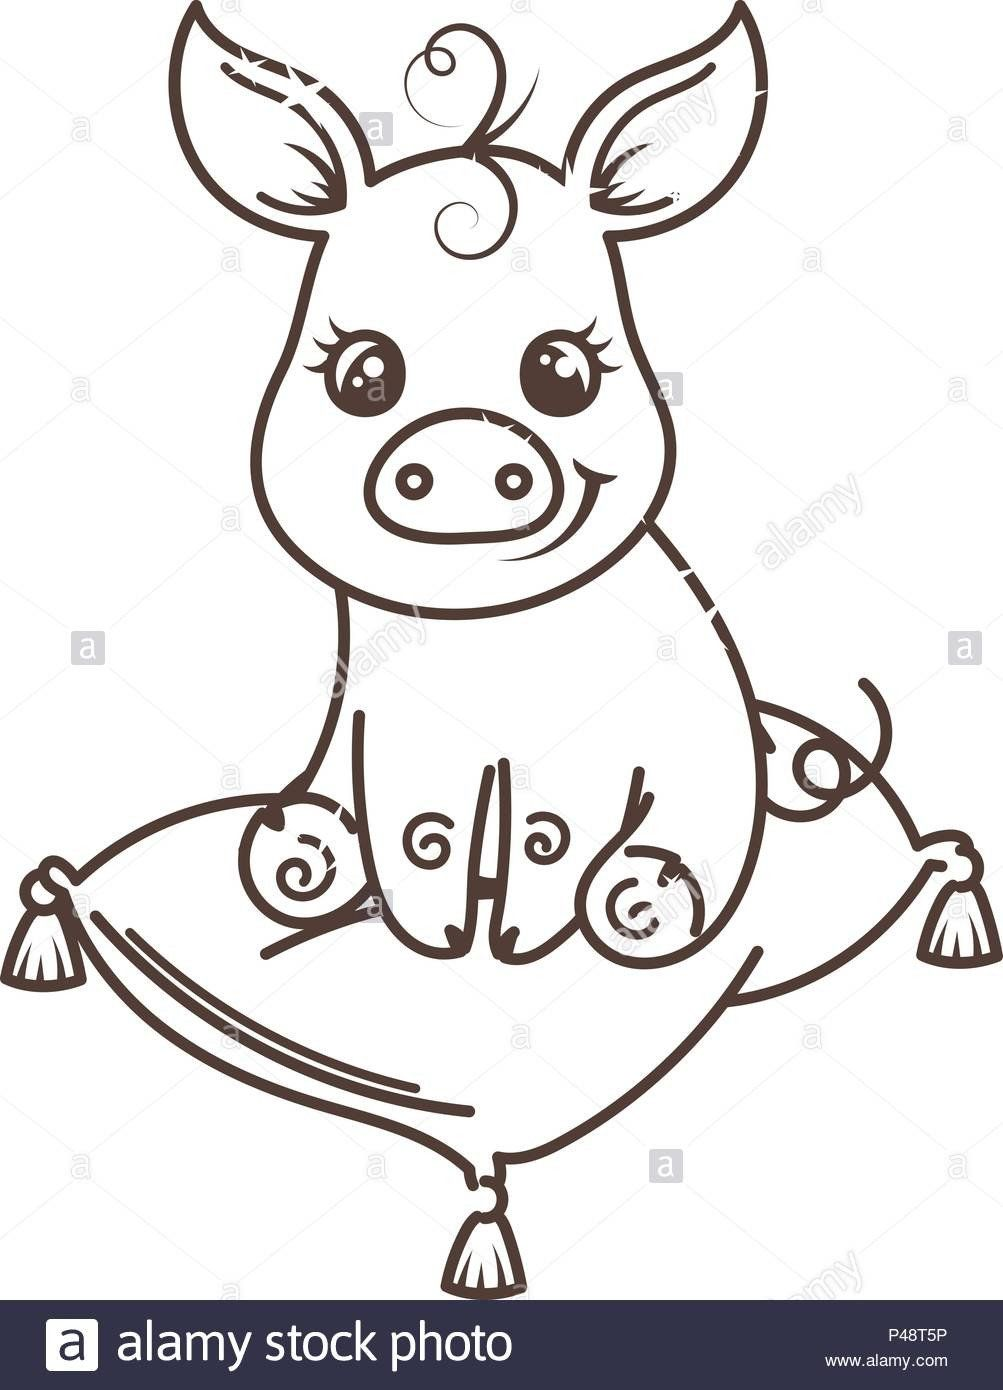 Coloring Pages Of Cute Pigs Cute Cartoon Baby Pig Vector Illustration Coloring Page Cute Pigs Cute Baby Pigs Baby Pigs